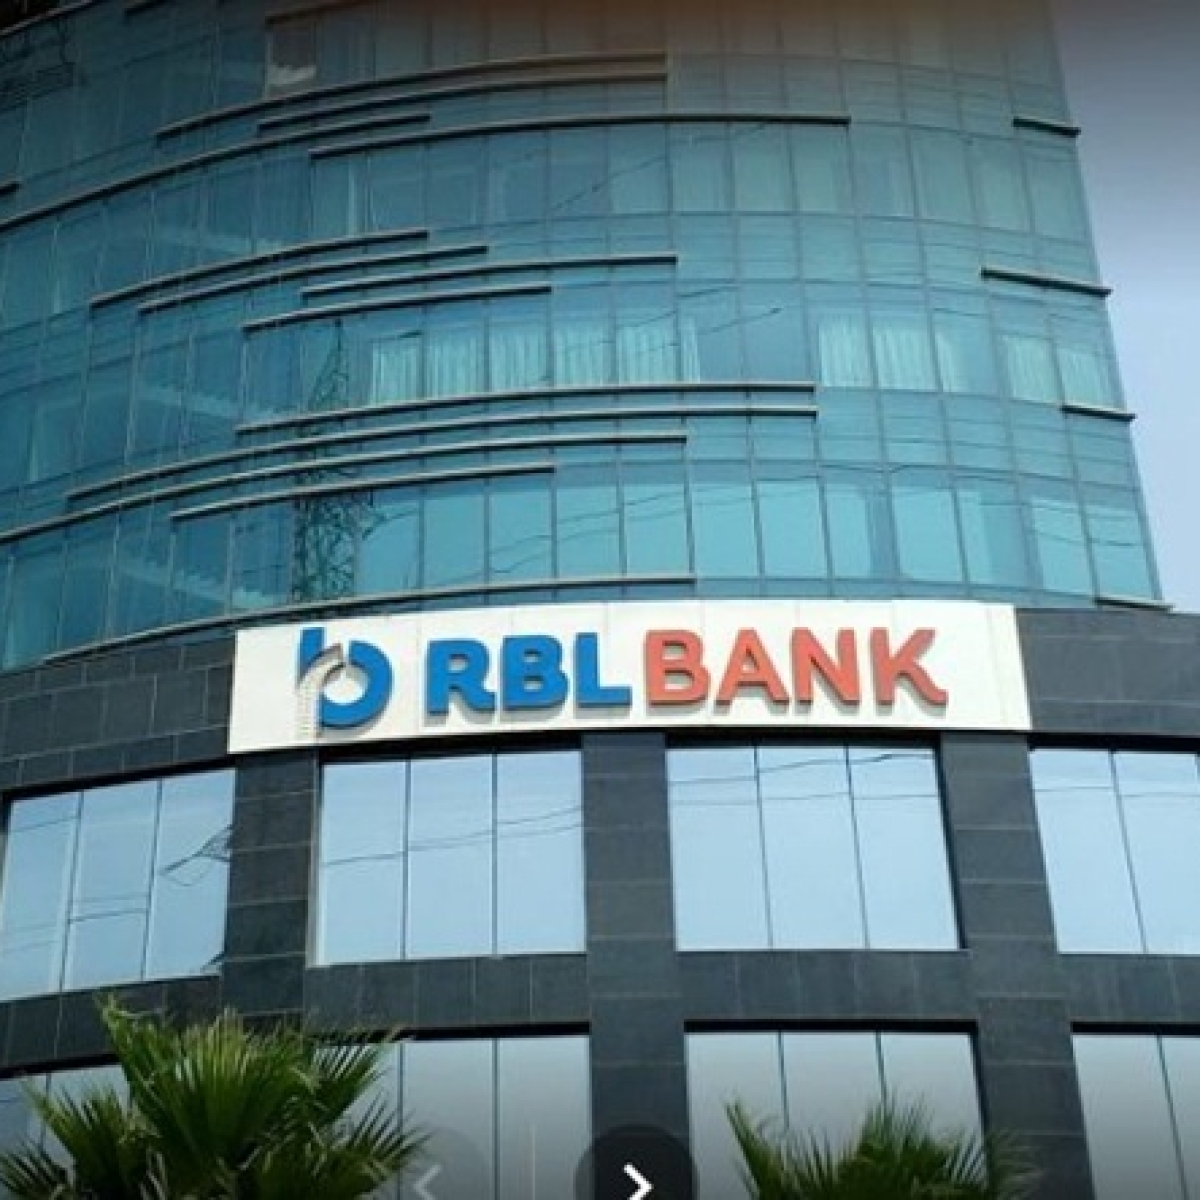 Teji mandi: RBL Banks' net profit stands at Rs 114 crores, down by 54% on a YoY basis